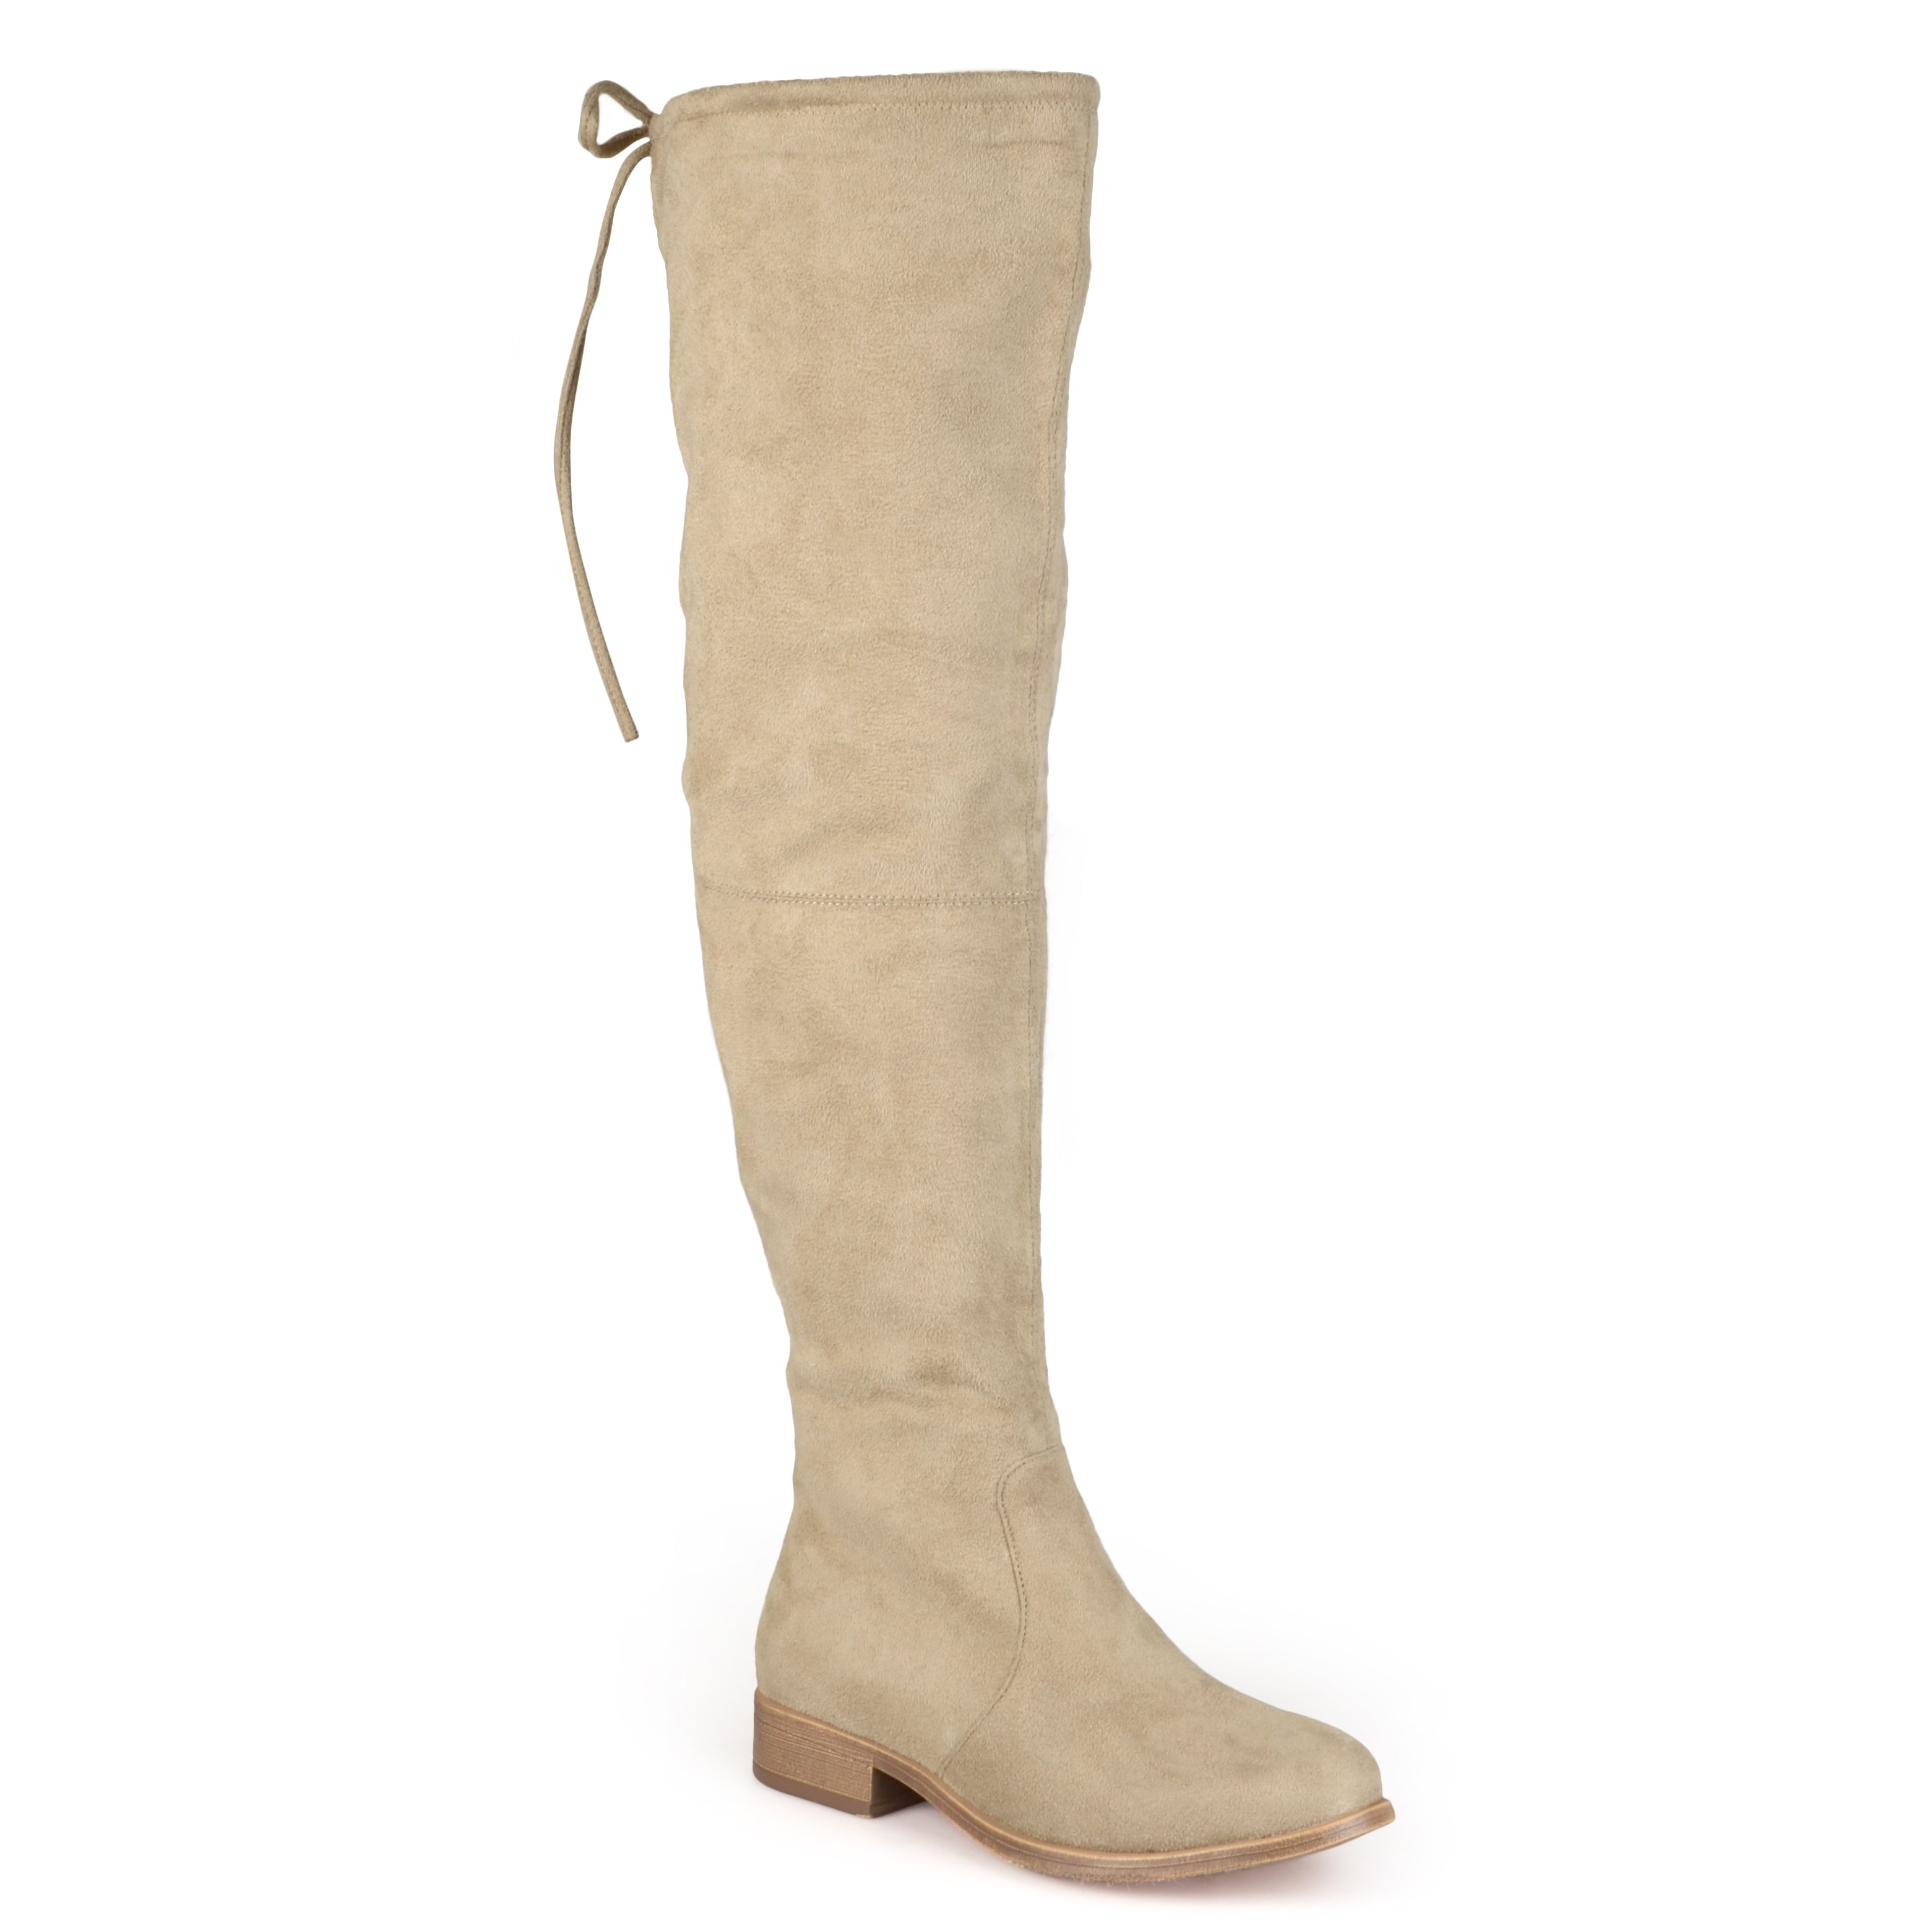 731d9a6eca1 Womens Wide Calf Faux Suede Over-the-knee Boots